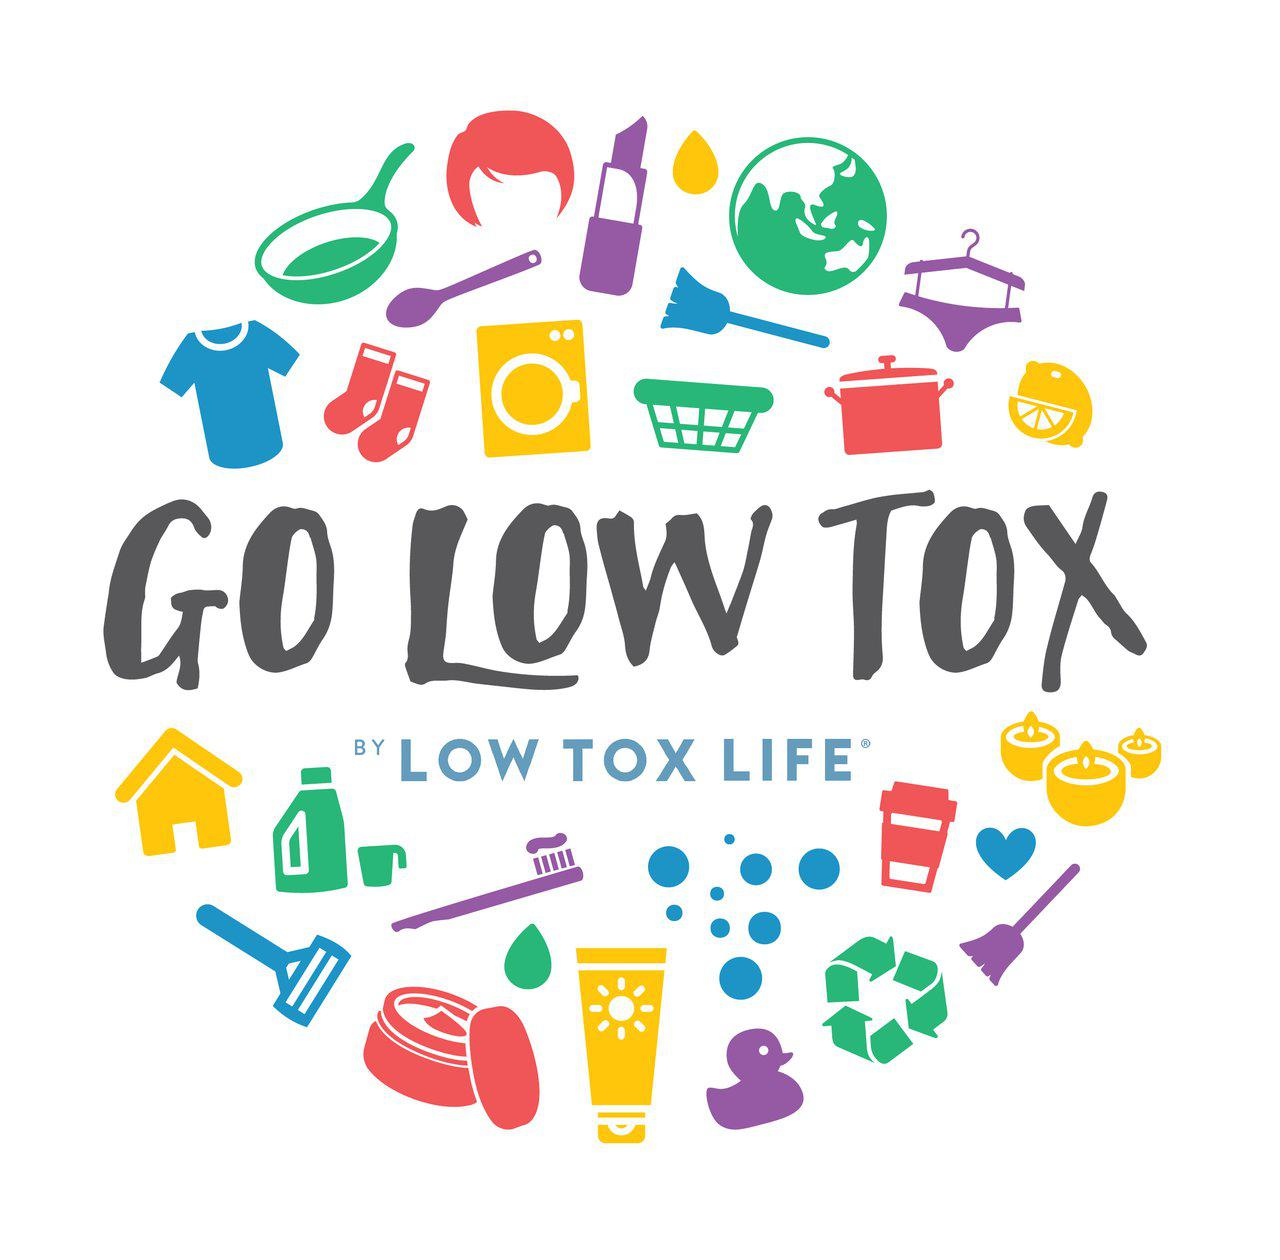 Go Low Tox - Basic